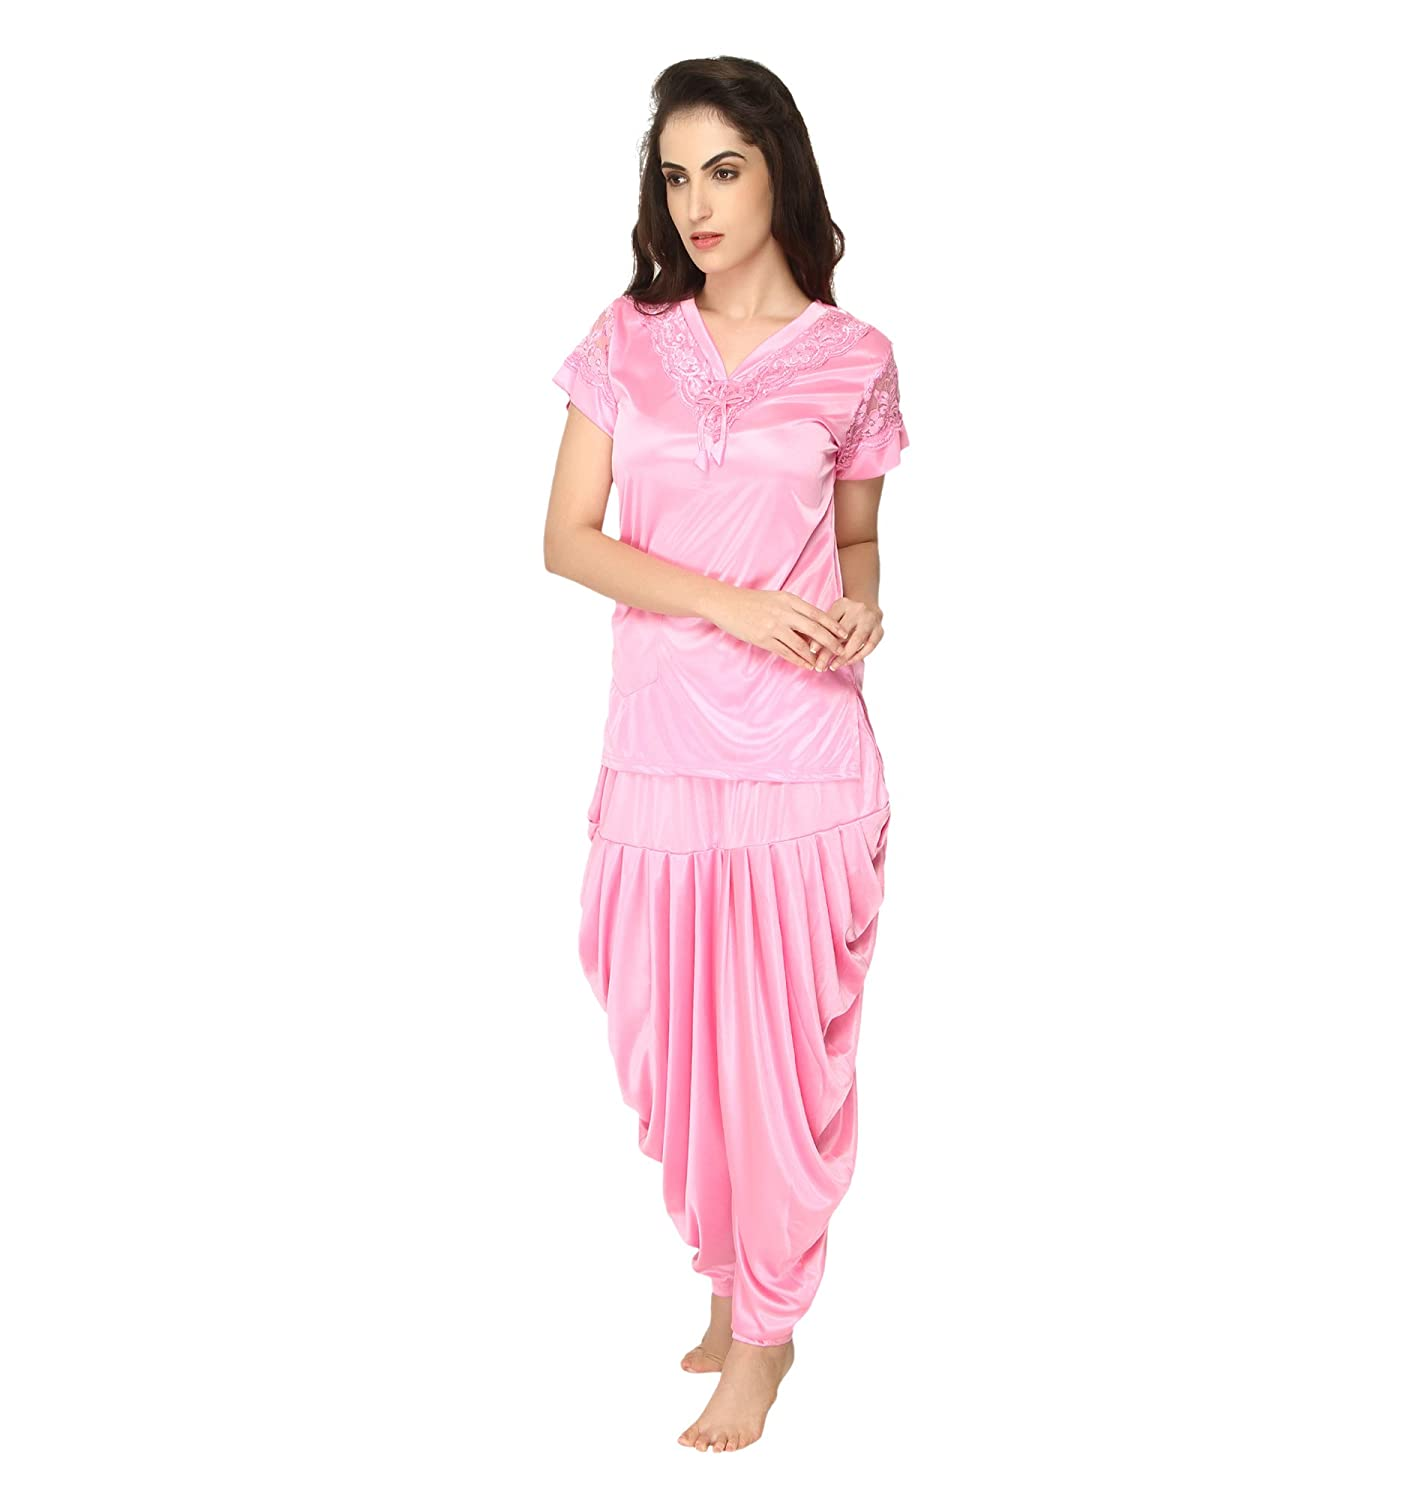 a2c6d841b51 Pretty Awesome Women s Satin Patiala Night Suit  Amazon.in  Clothing    Accessories